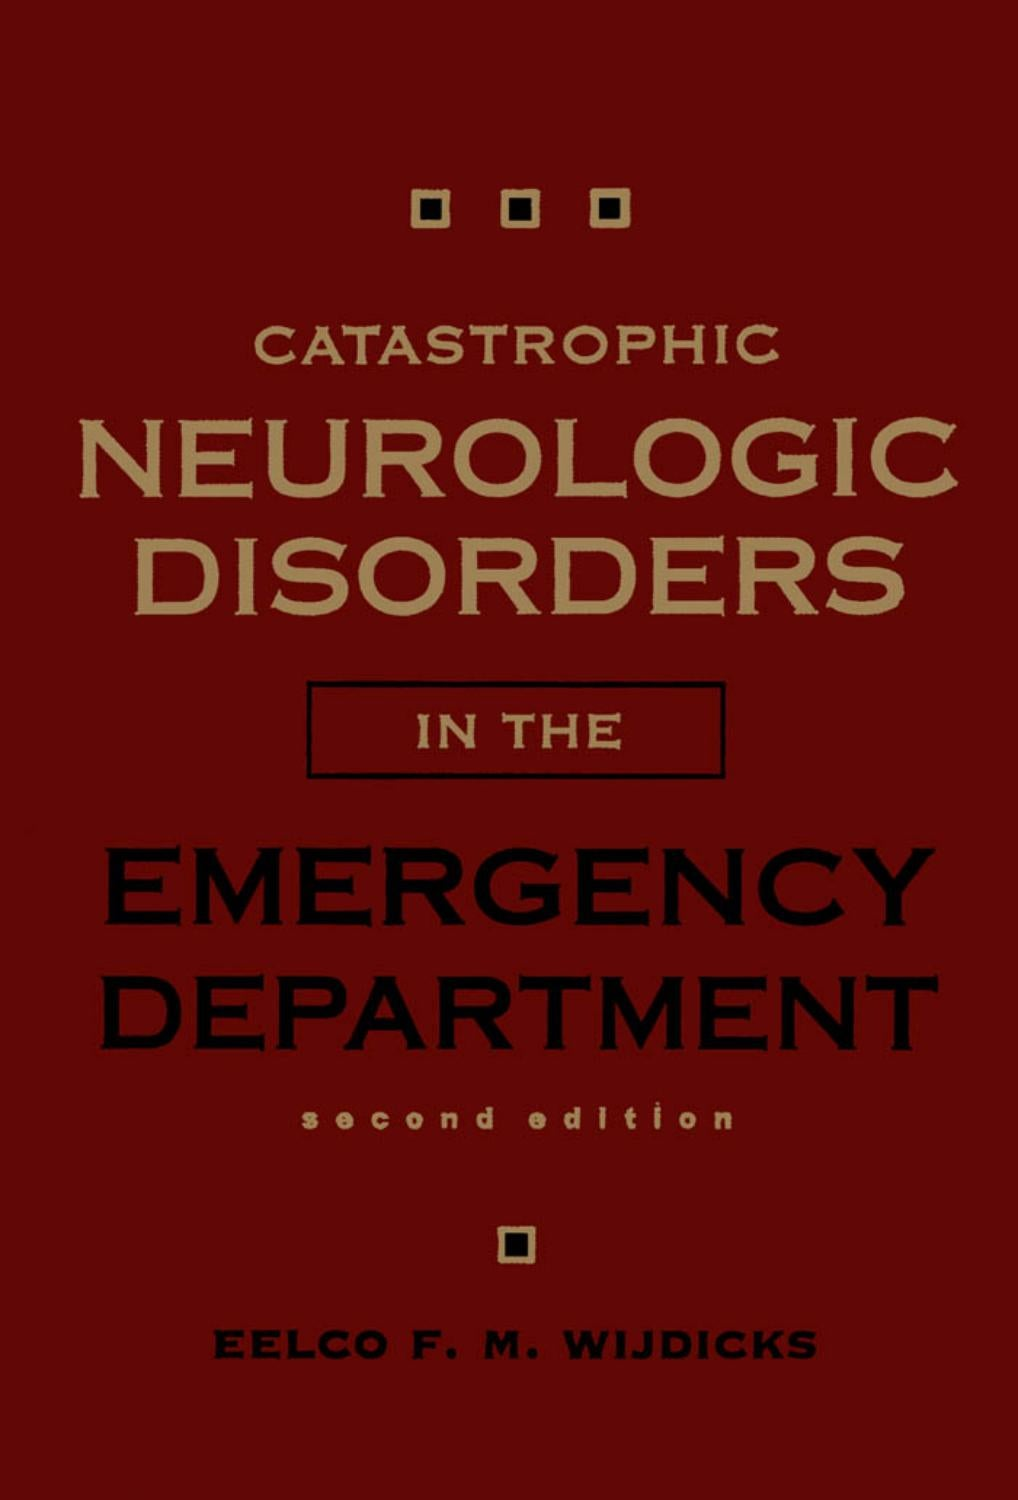 Catastrophic Neurologic Disorders In The Emergency